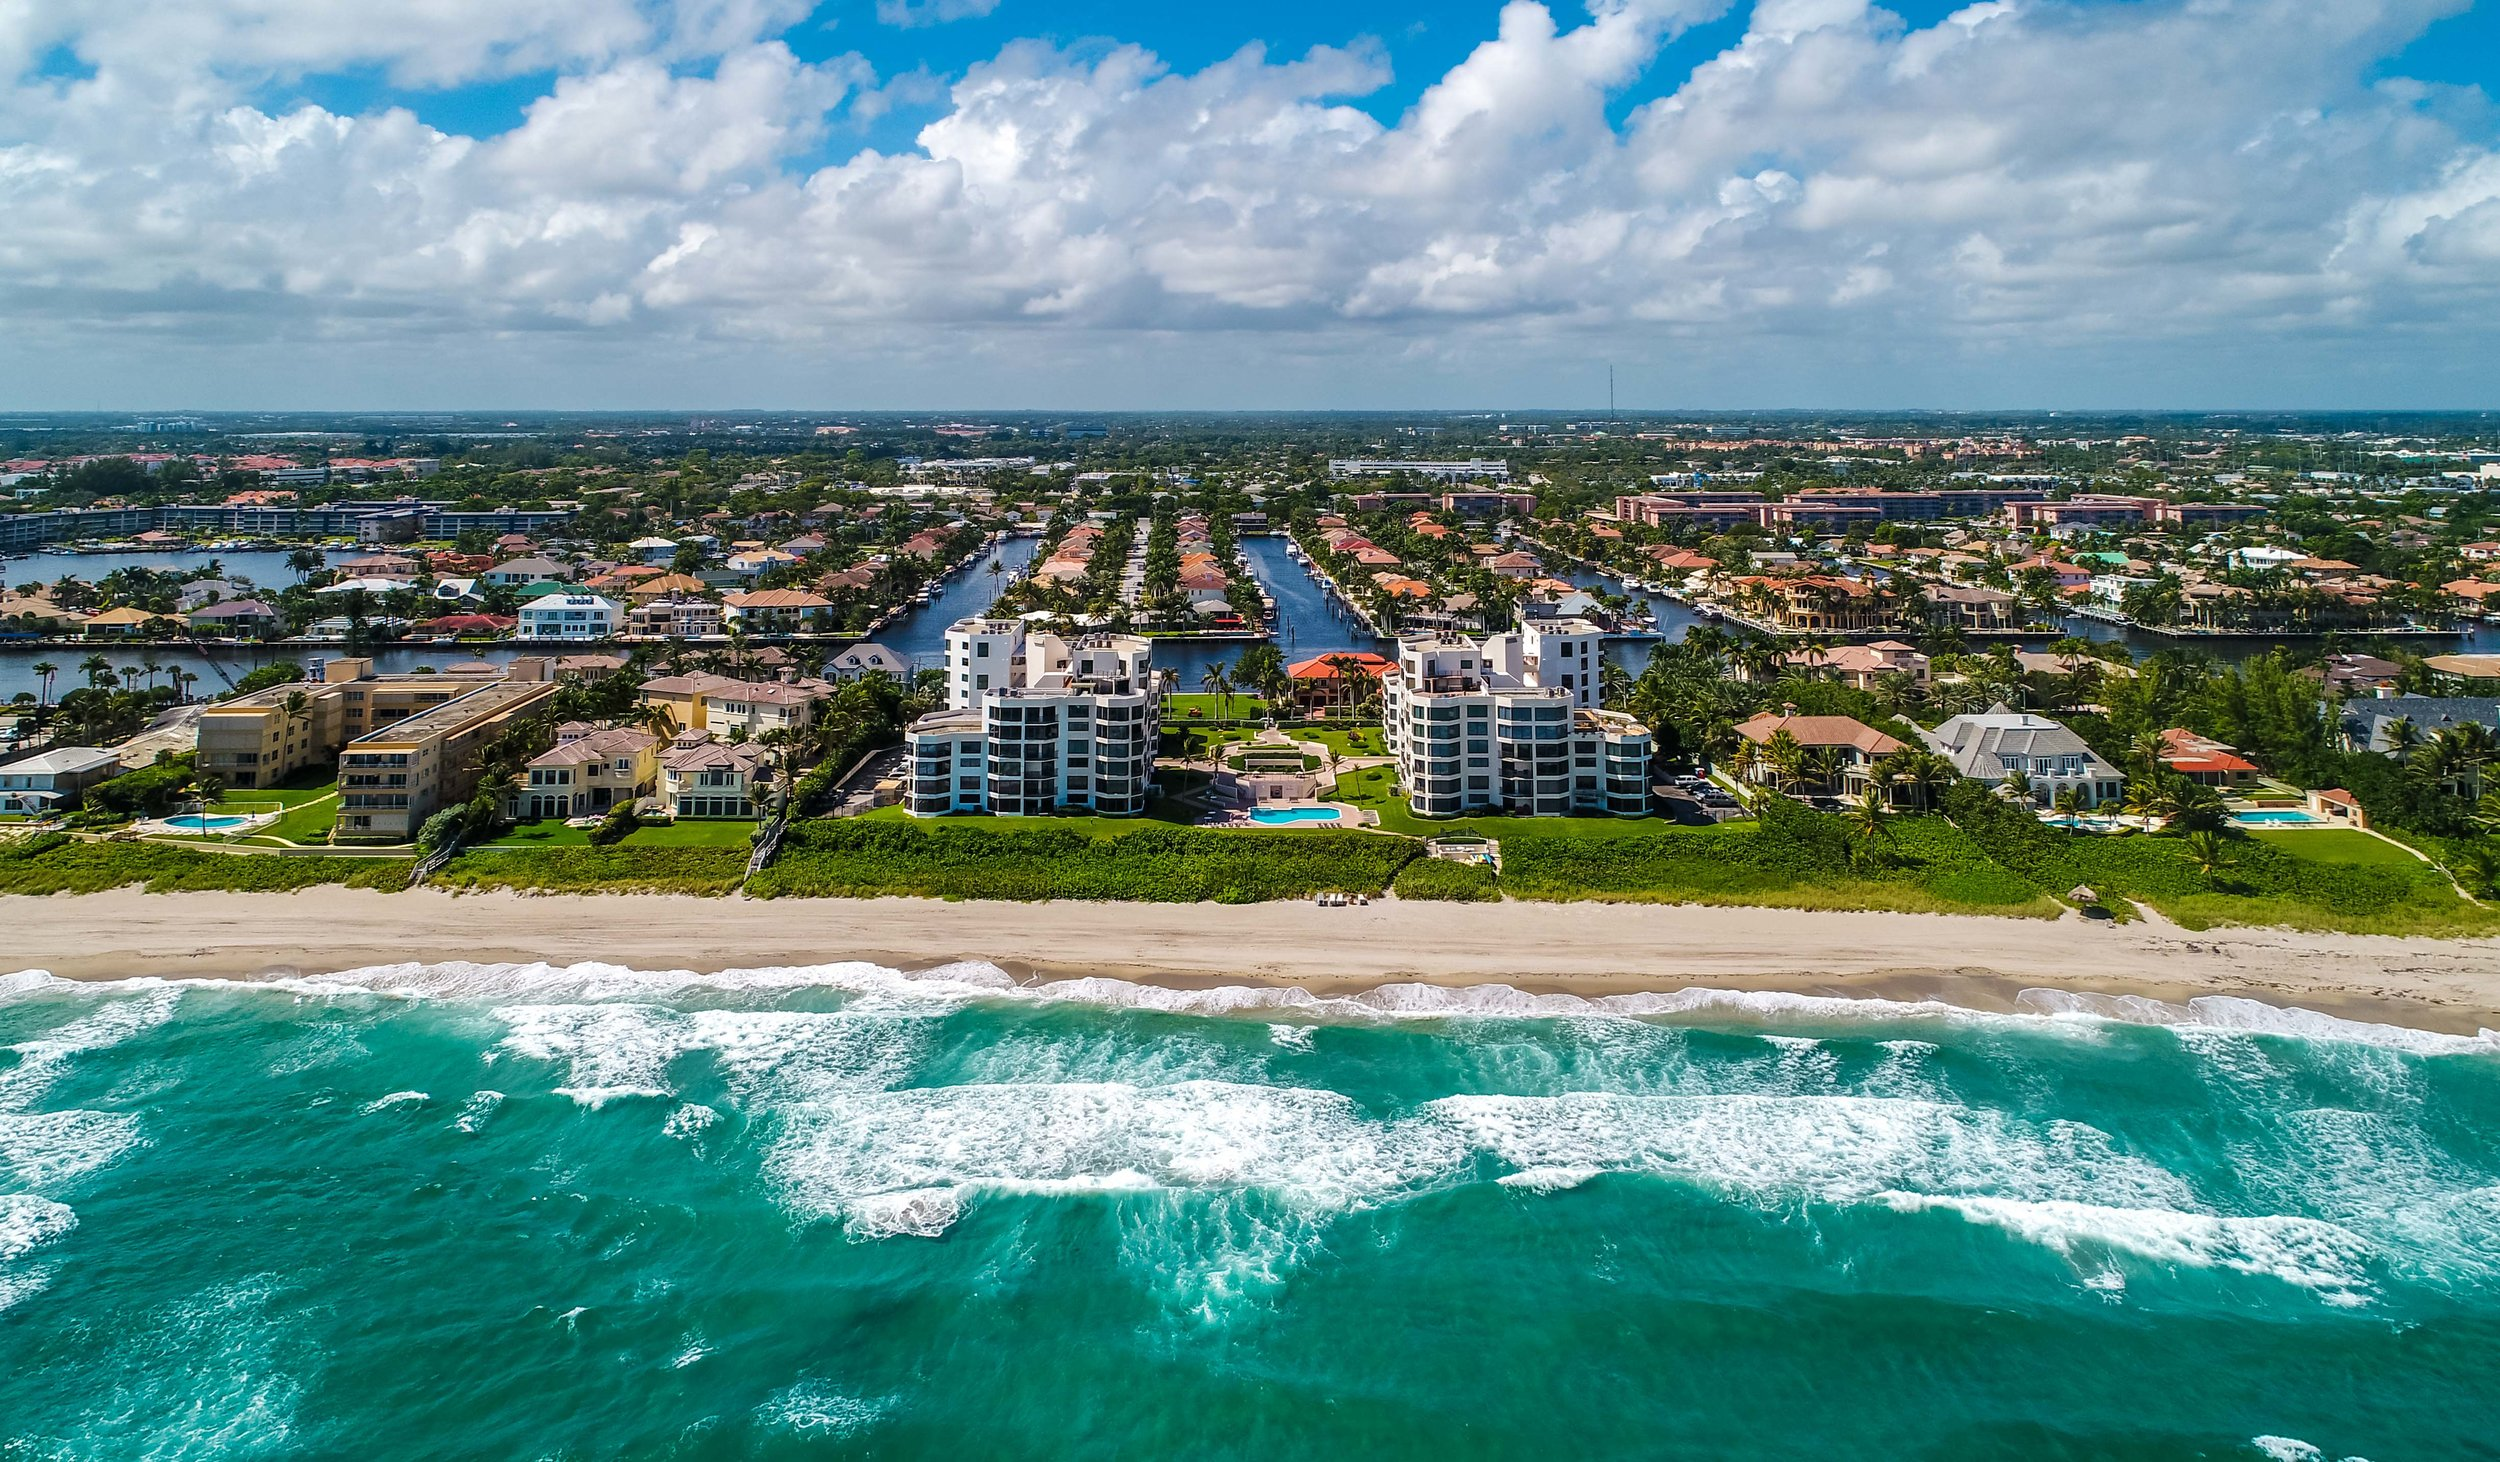 Townhouses of Highland Beach  - Amenities: Indoor Garage Parking, Fob Entry, Security, Pool, BBQ Area, Private Beach access, private park along the intracoastal across from the building, pest control